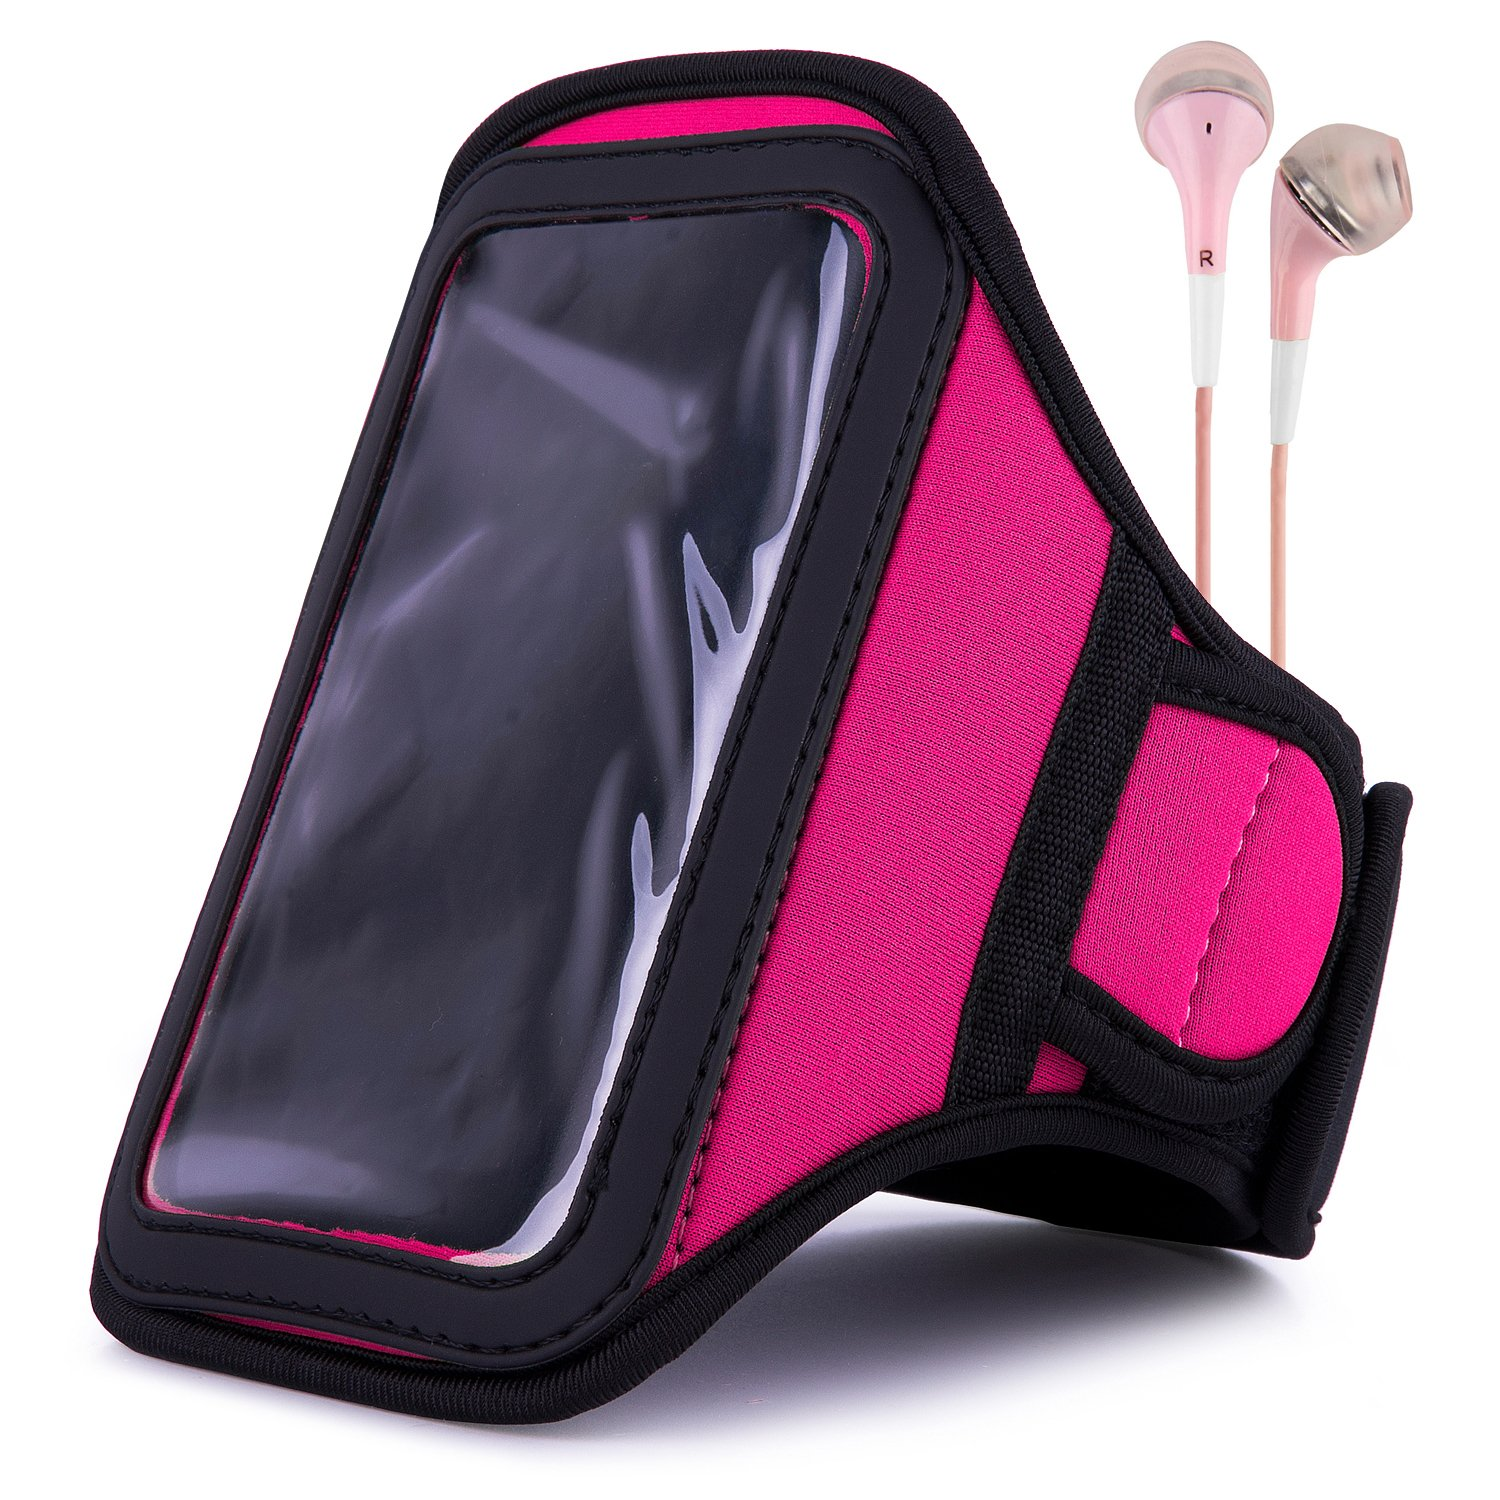 VanGoddy Armband – PINK MAGENTA Neoprene Sweat-proof w/ Key & ID Card Pouch for LG Volt LTE Android Phone + Pink Handsfree Microphone Headphones